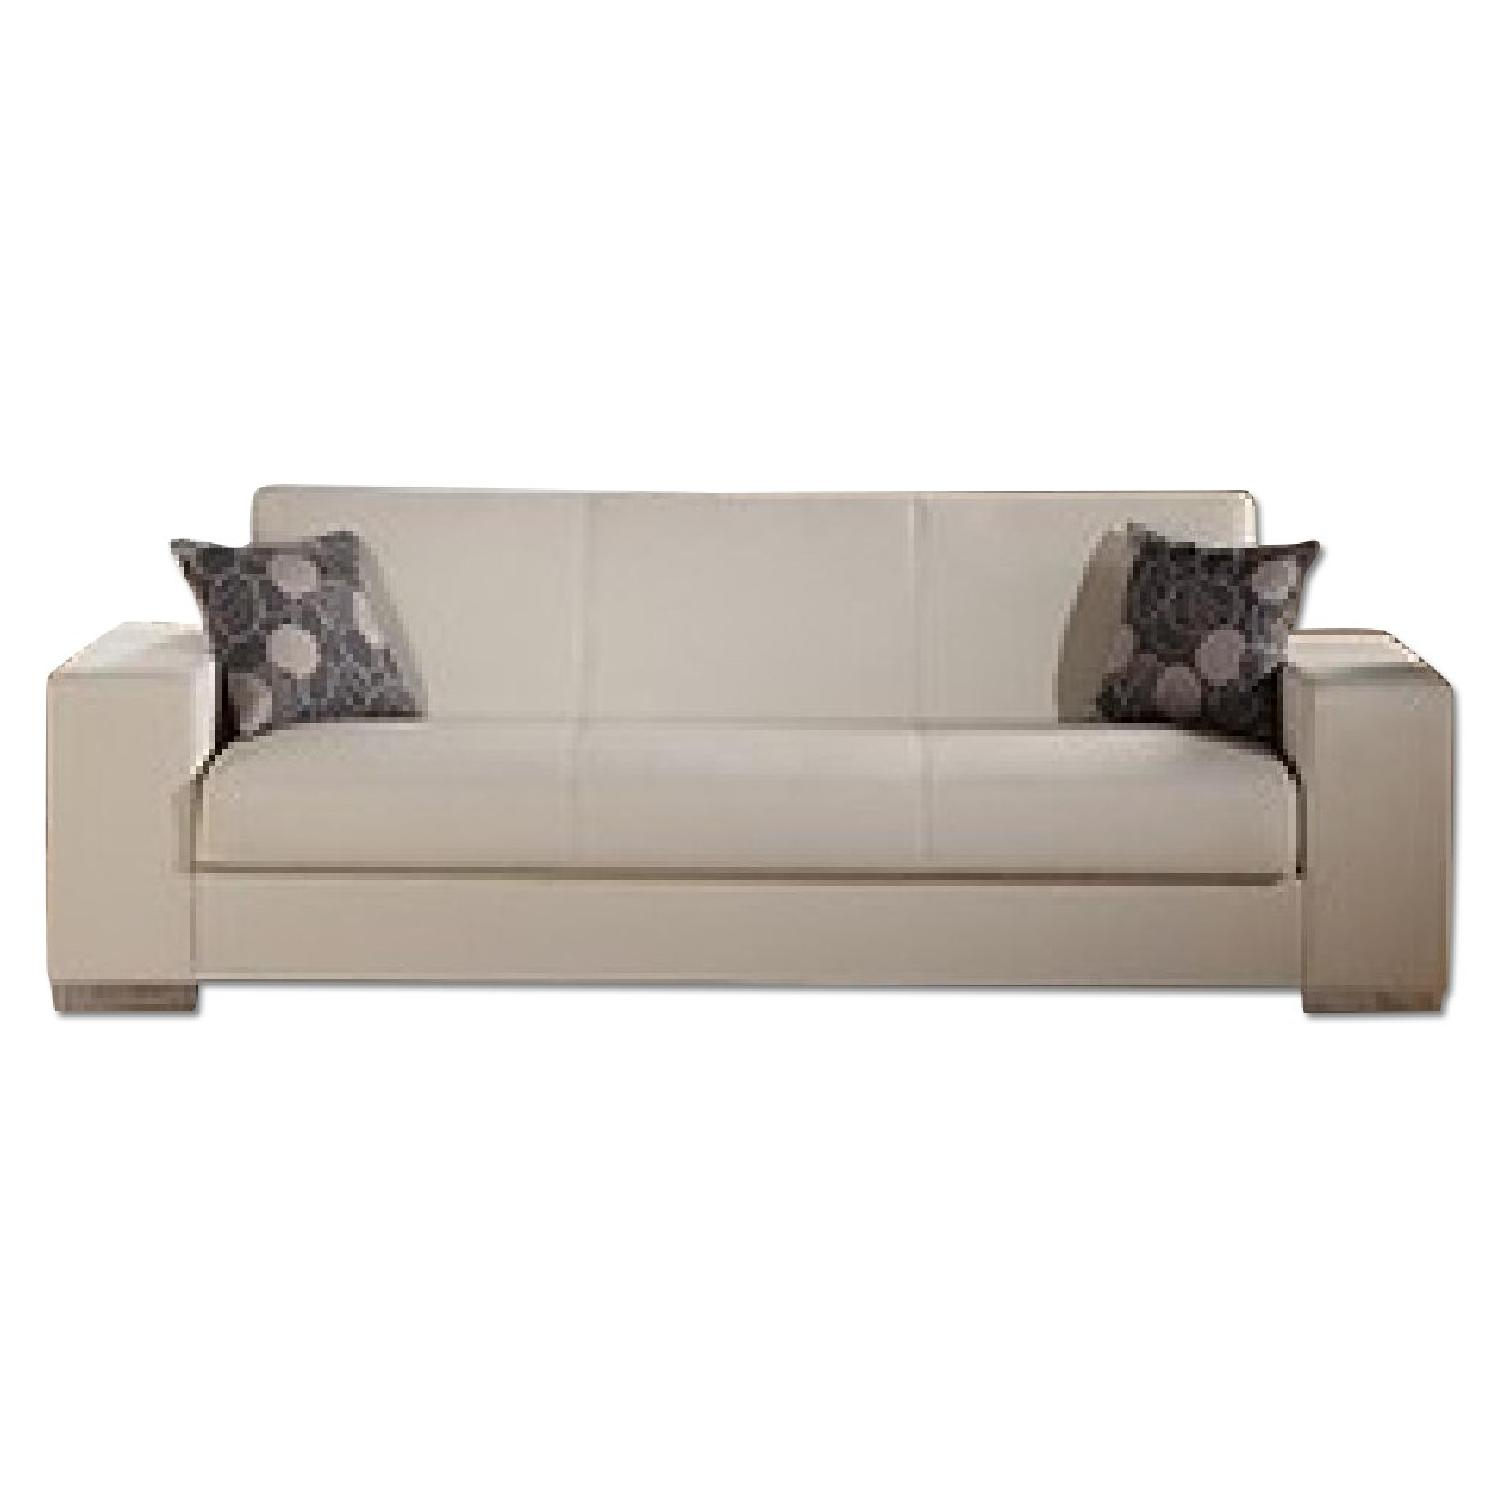 dwr bay sleeper sofa review uratex bed pictures istikbal fantasy aptdeco